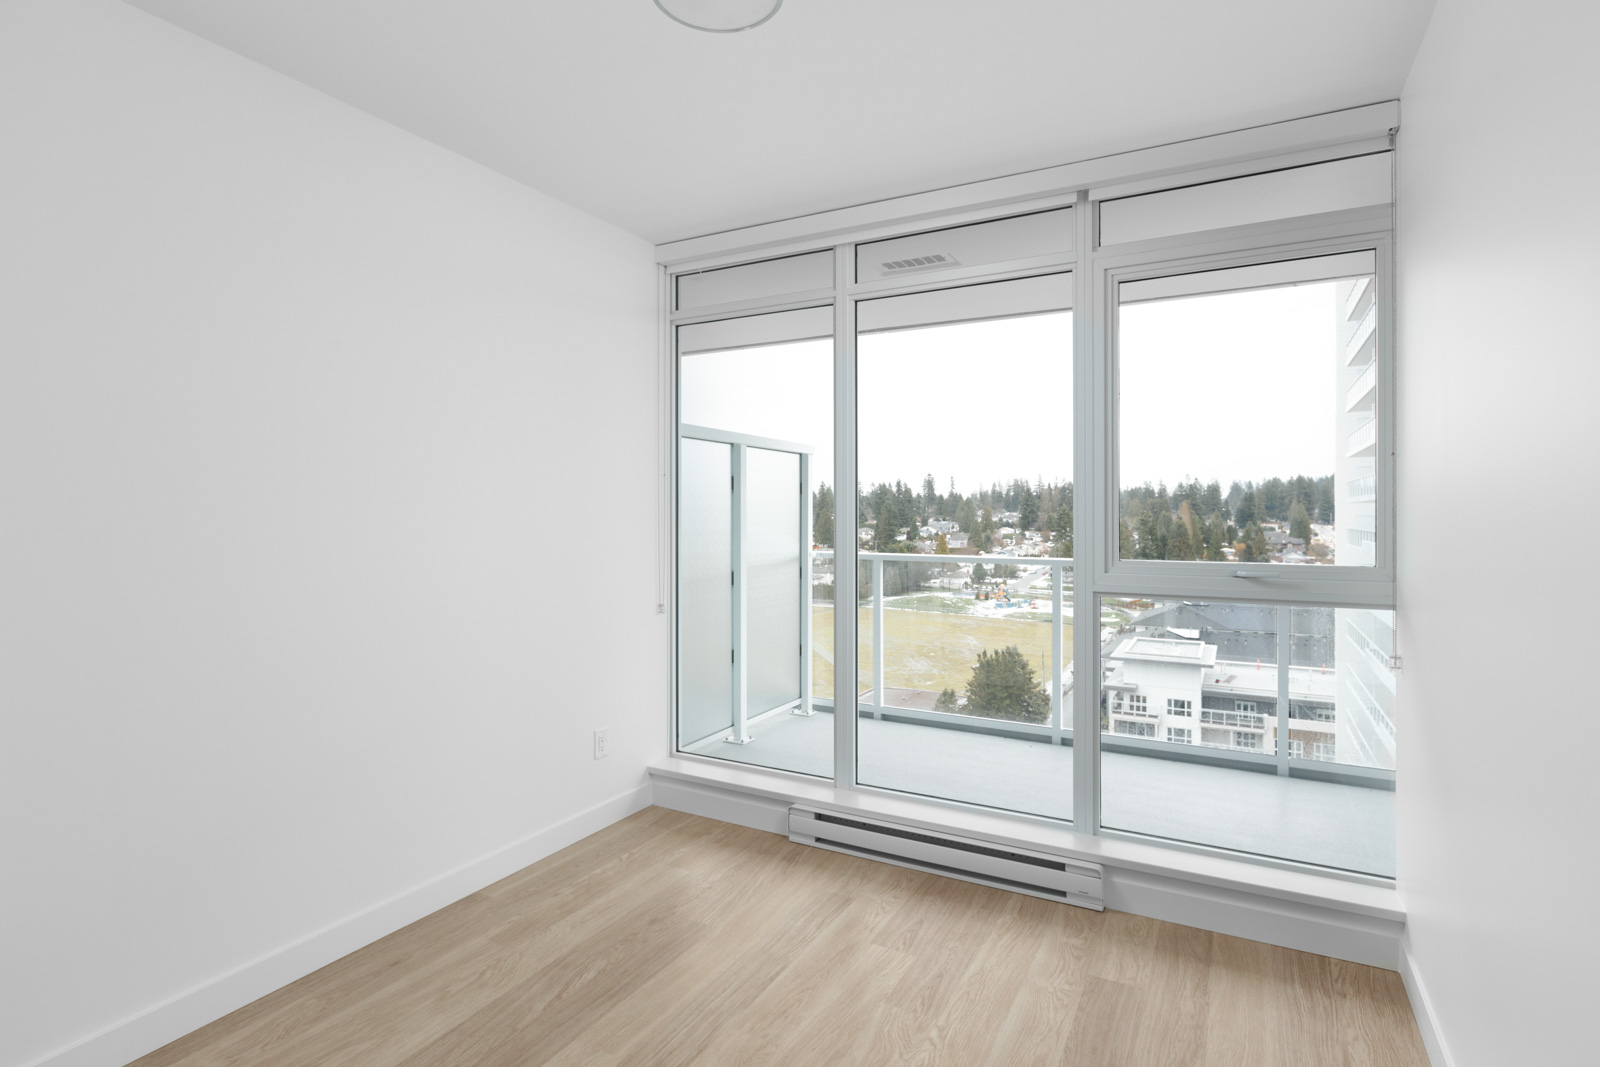 diagonal view of corner of empty condo room with floor to ceiling windows on right and white wall on left with hardwood floors